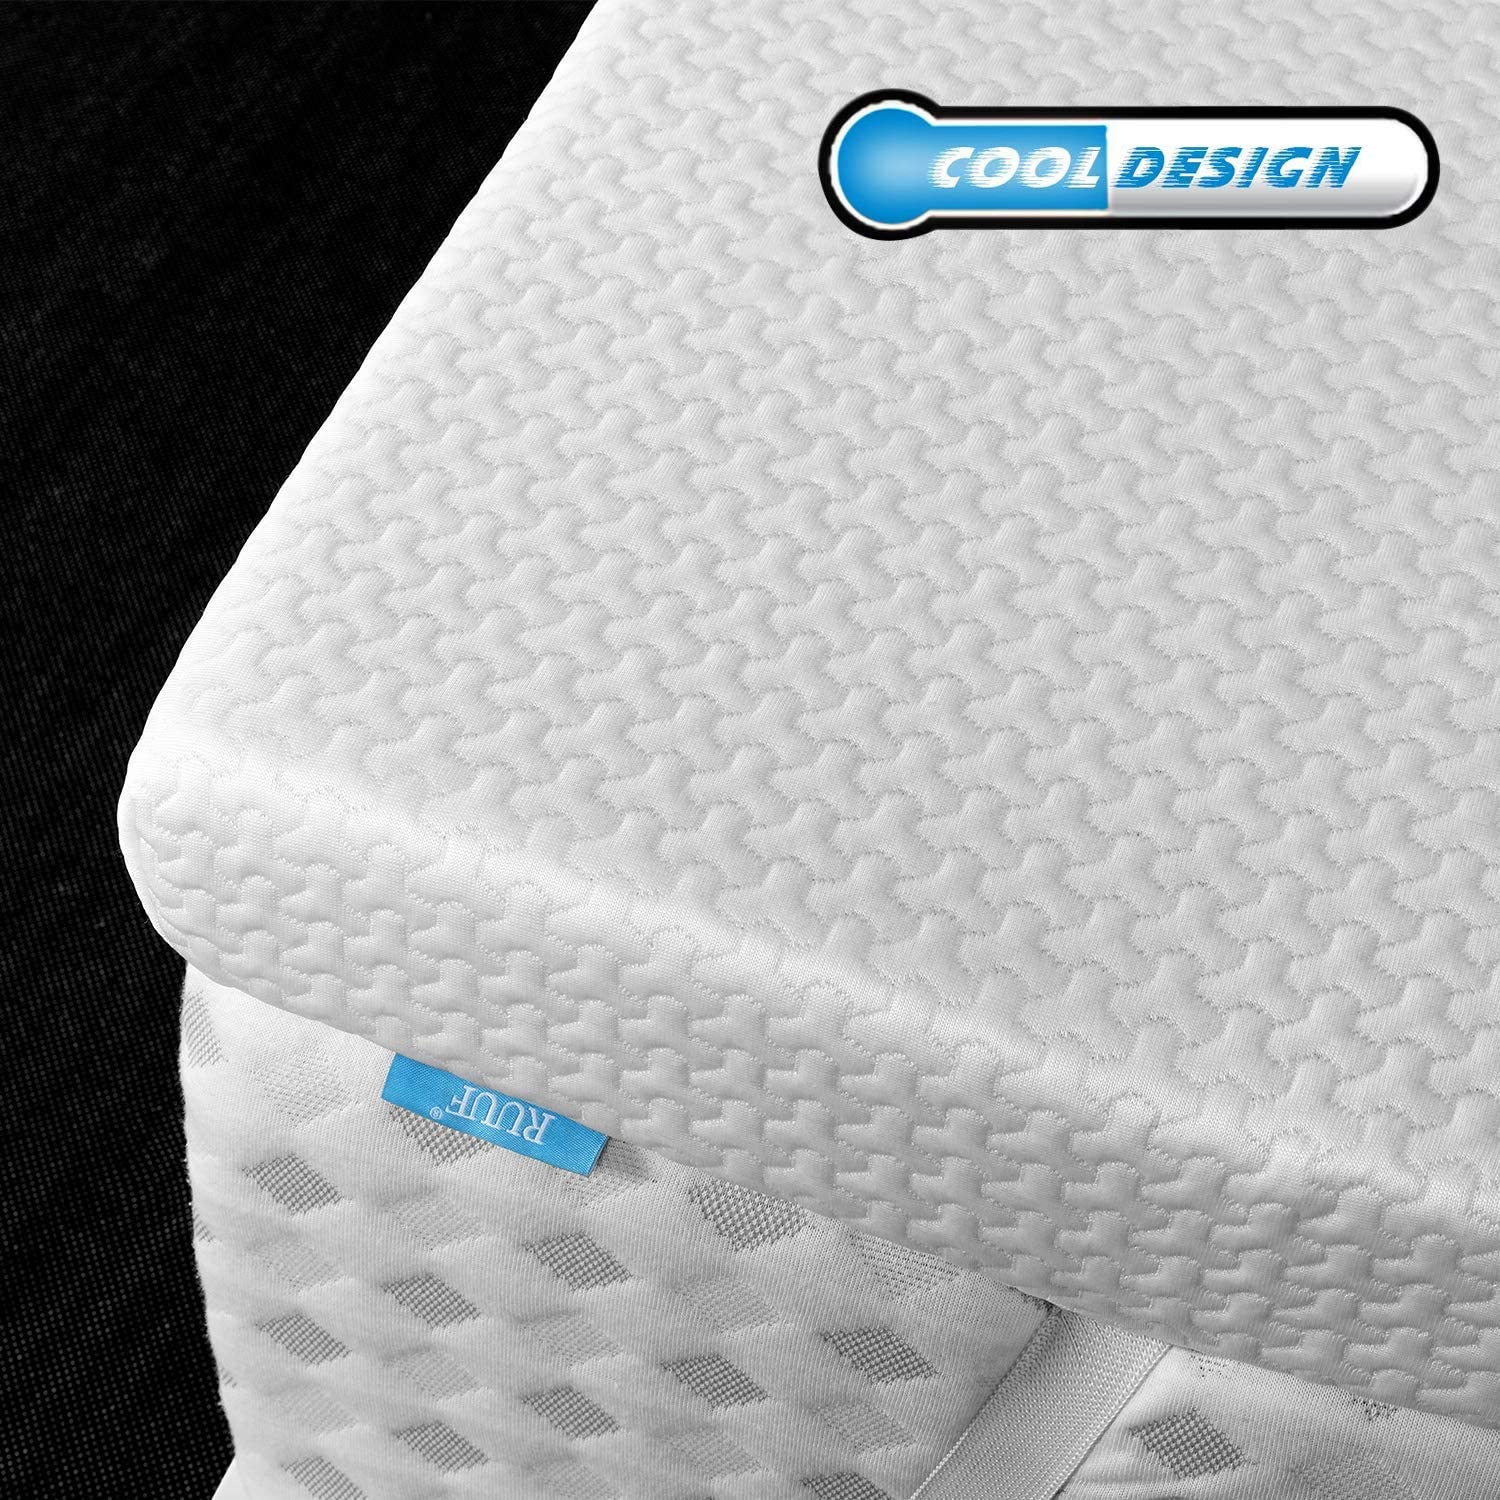 RUUF Mattress Topper Twin XL, 3 Inch High Density Memory Foam Topper with Removable Cooling Cover, Medium-Soft Bed Topper Twin Extra Long Size for Dorm Bed